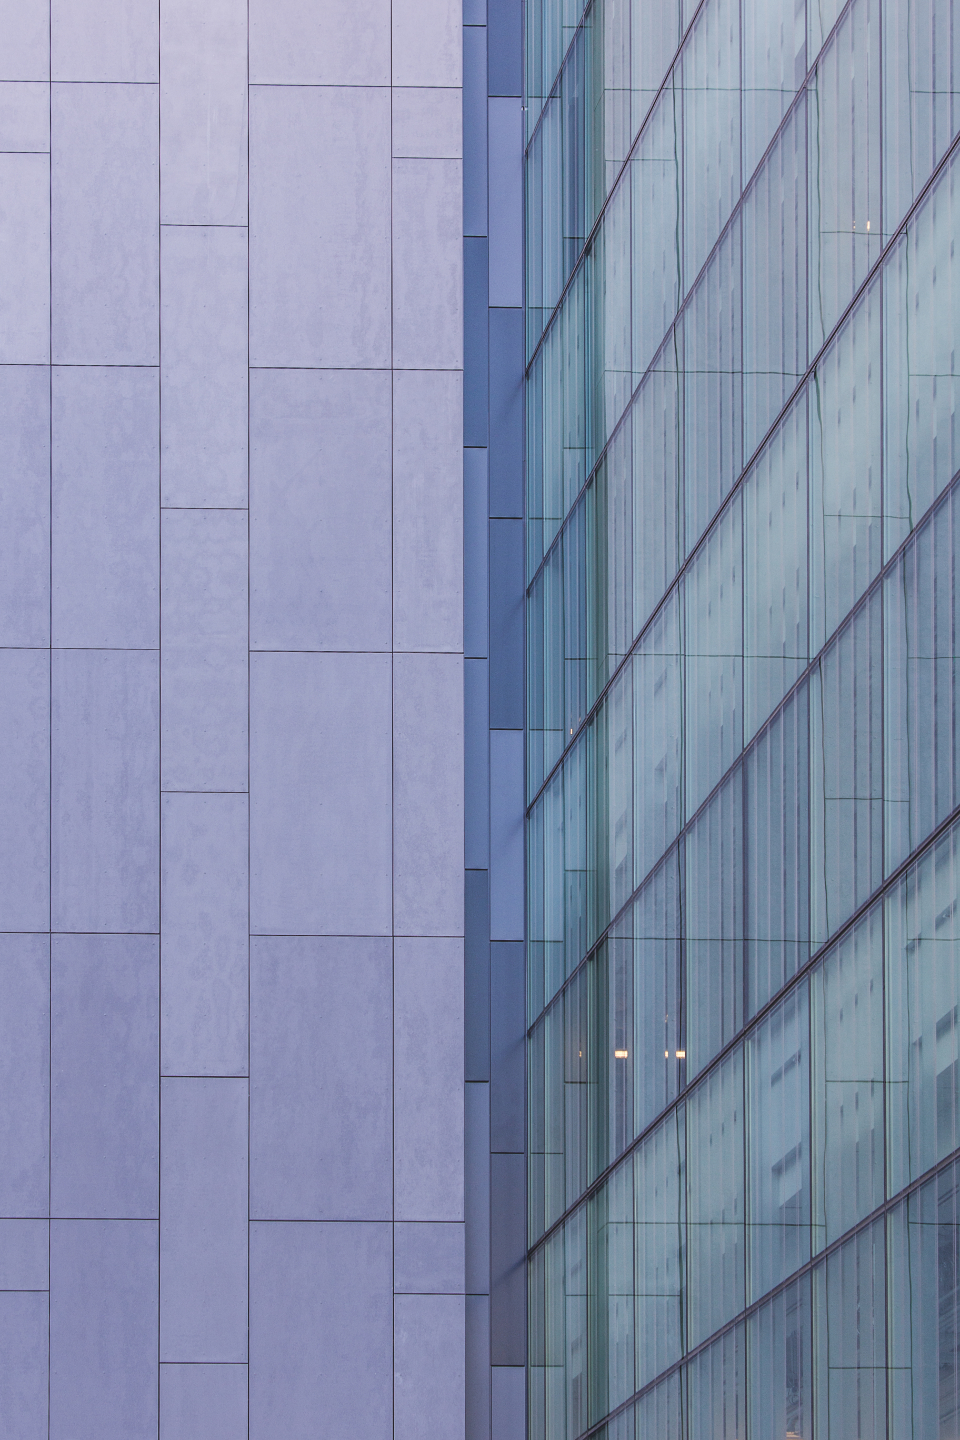 abstract building architecture